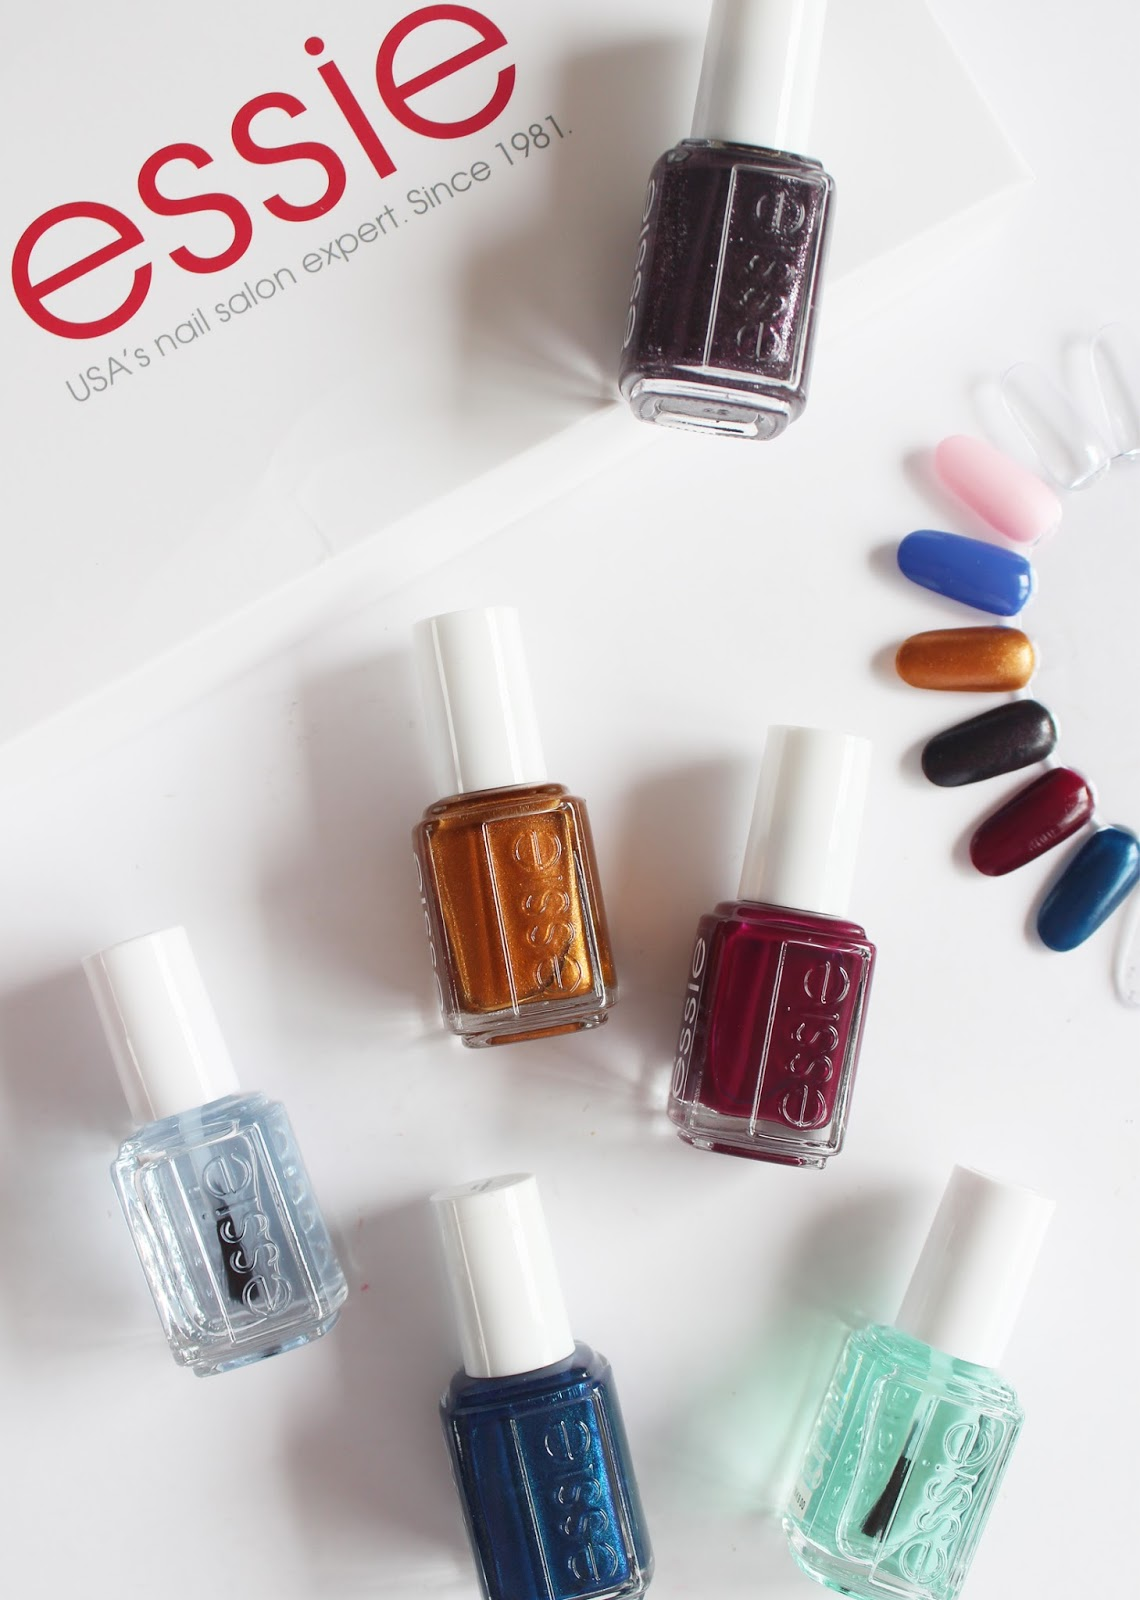 Essie Nail Polish Fall 2016 Swatches - Creative Touch